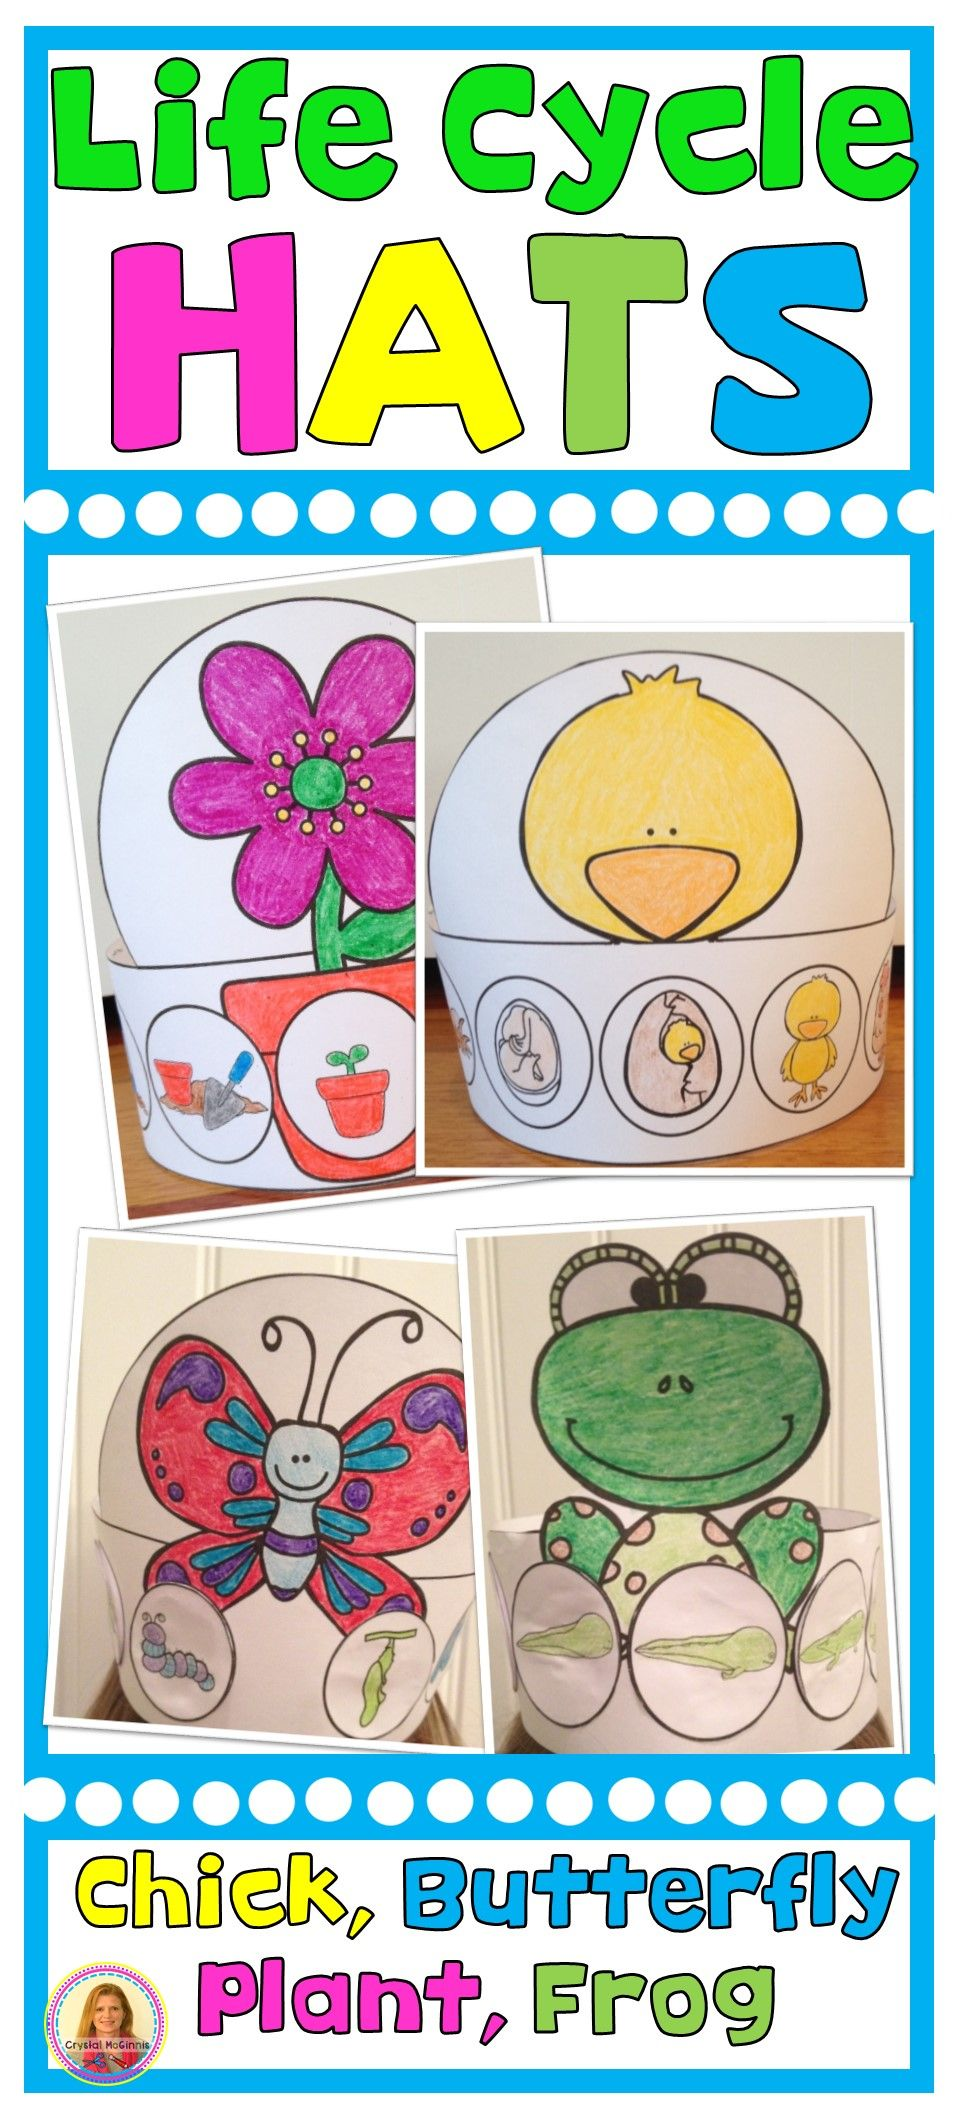 Life Cycle Of A Frog Chicken Butterfly Plant Hats Sequencing Bundle Life Cycles Kindergarten Plant Life Cycles Kindergarten Life Cycles Preschool [ 2112 x 960 Pixel ]